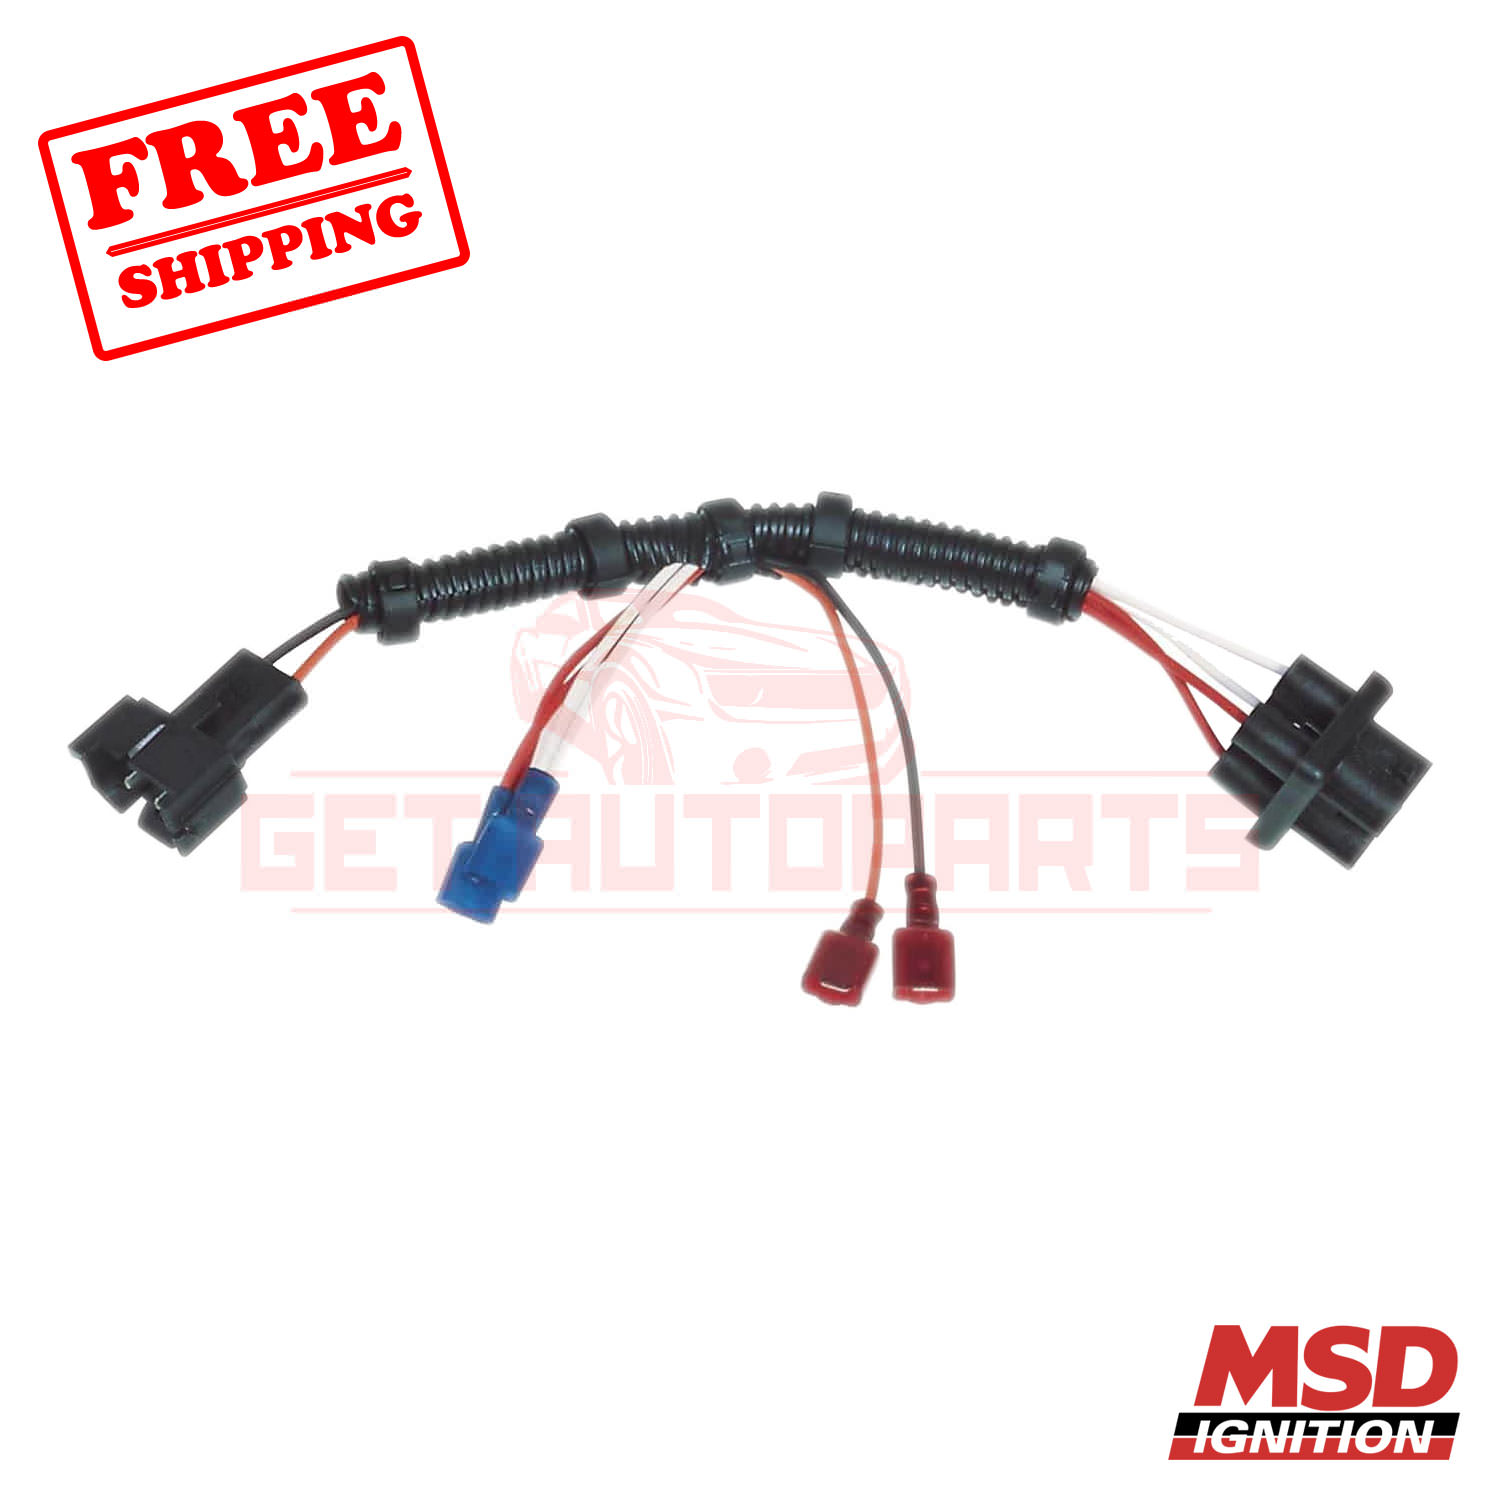 MSD Engine Wiring Harness for Chevrolet Tahoe 1995 | eBay | Chevrolet Engine Wiring Harness |  | eBay